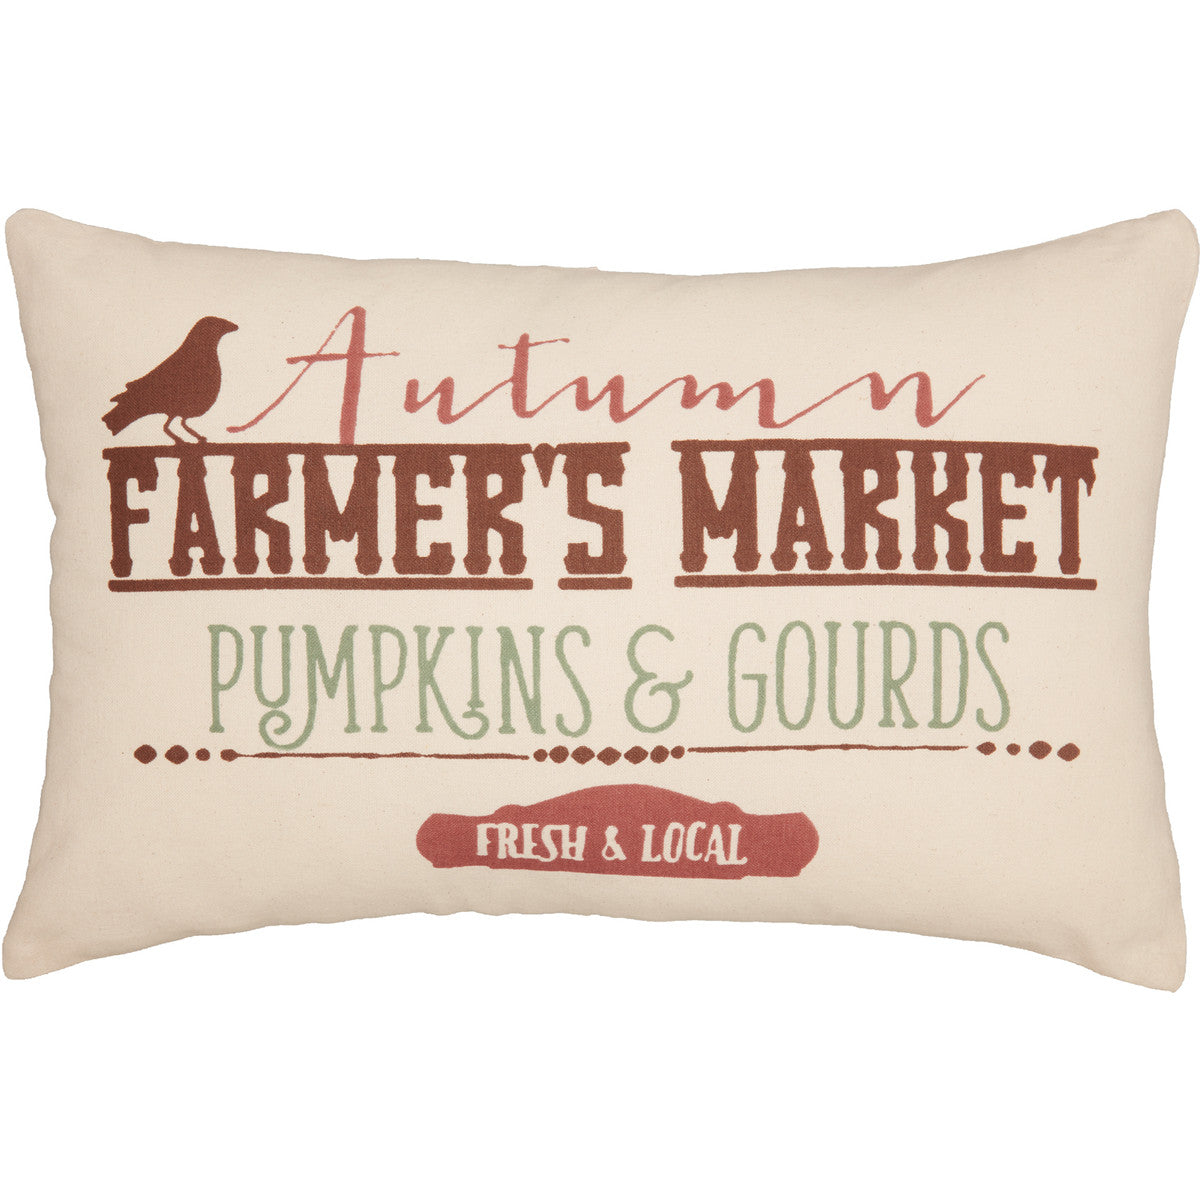 Farmer's Market Harvest Cushion 14x22""